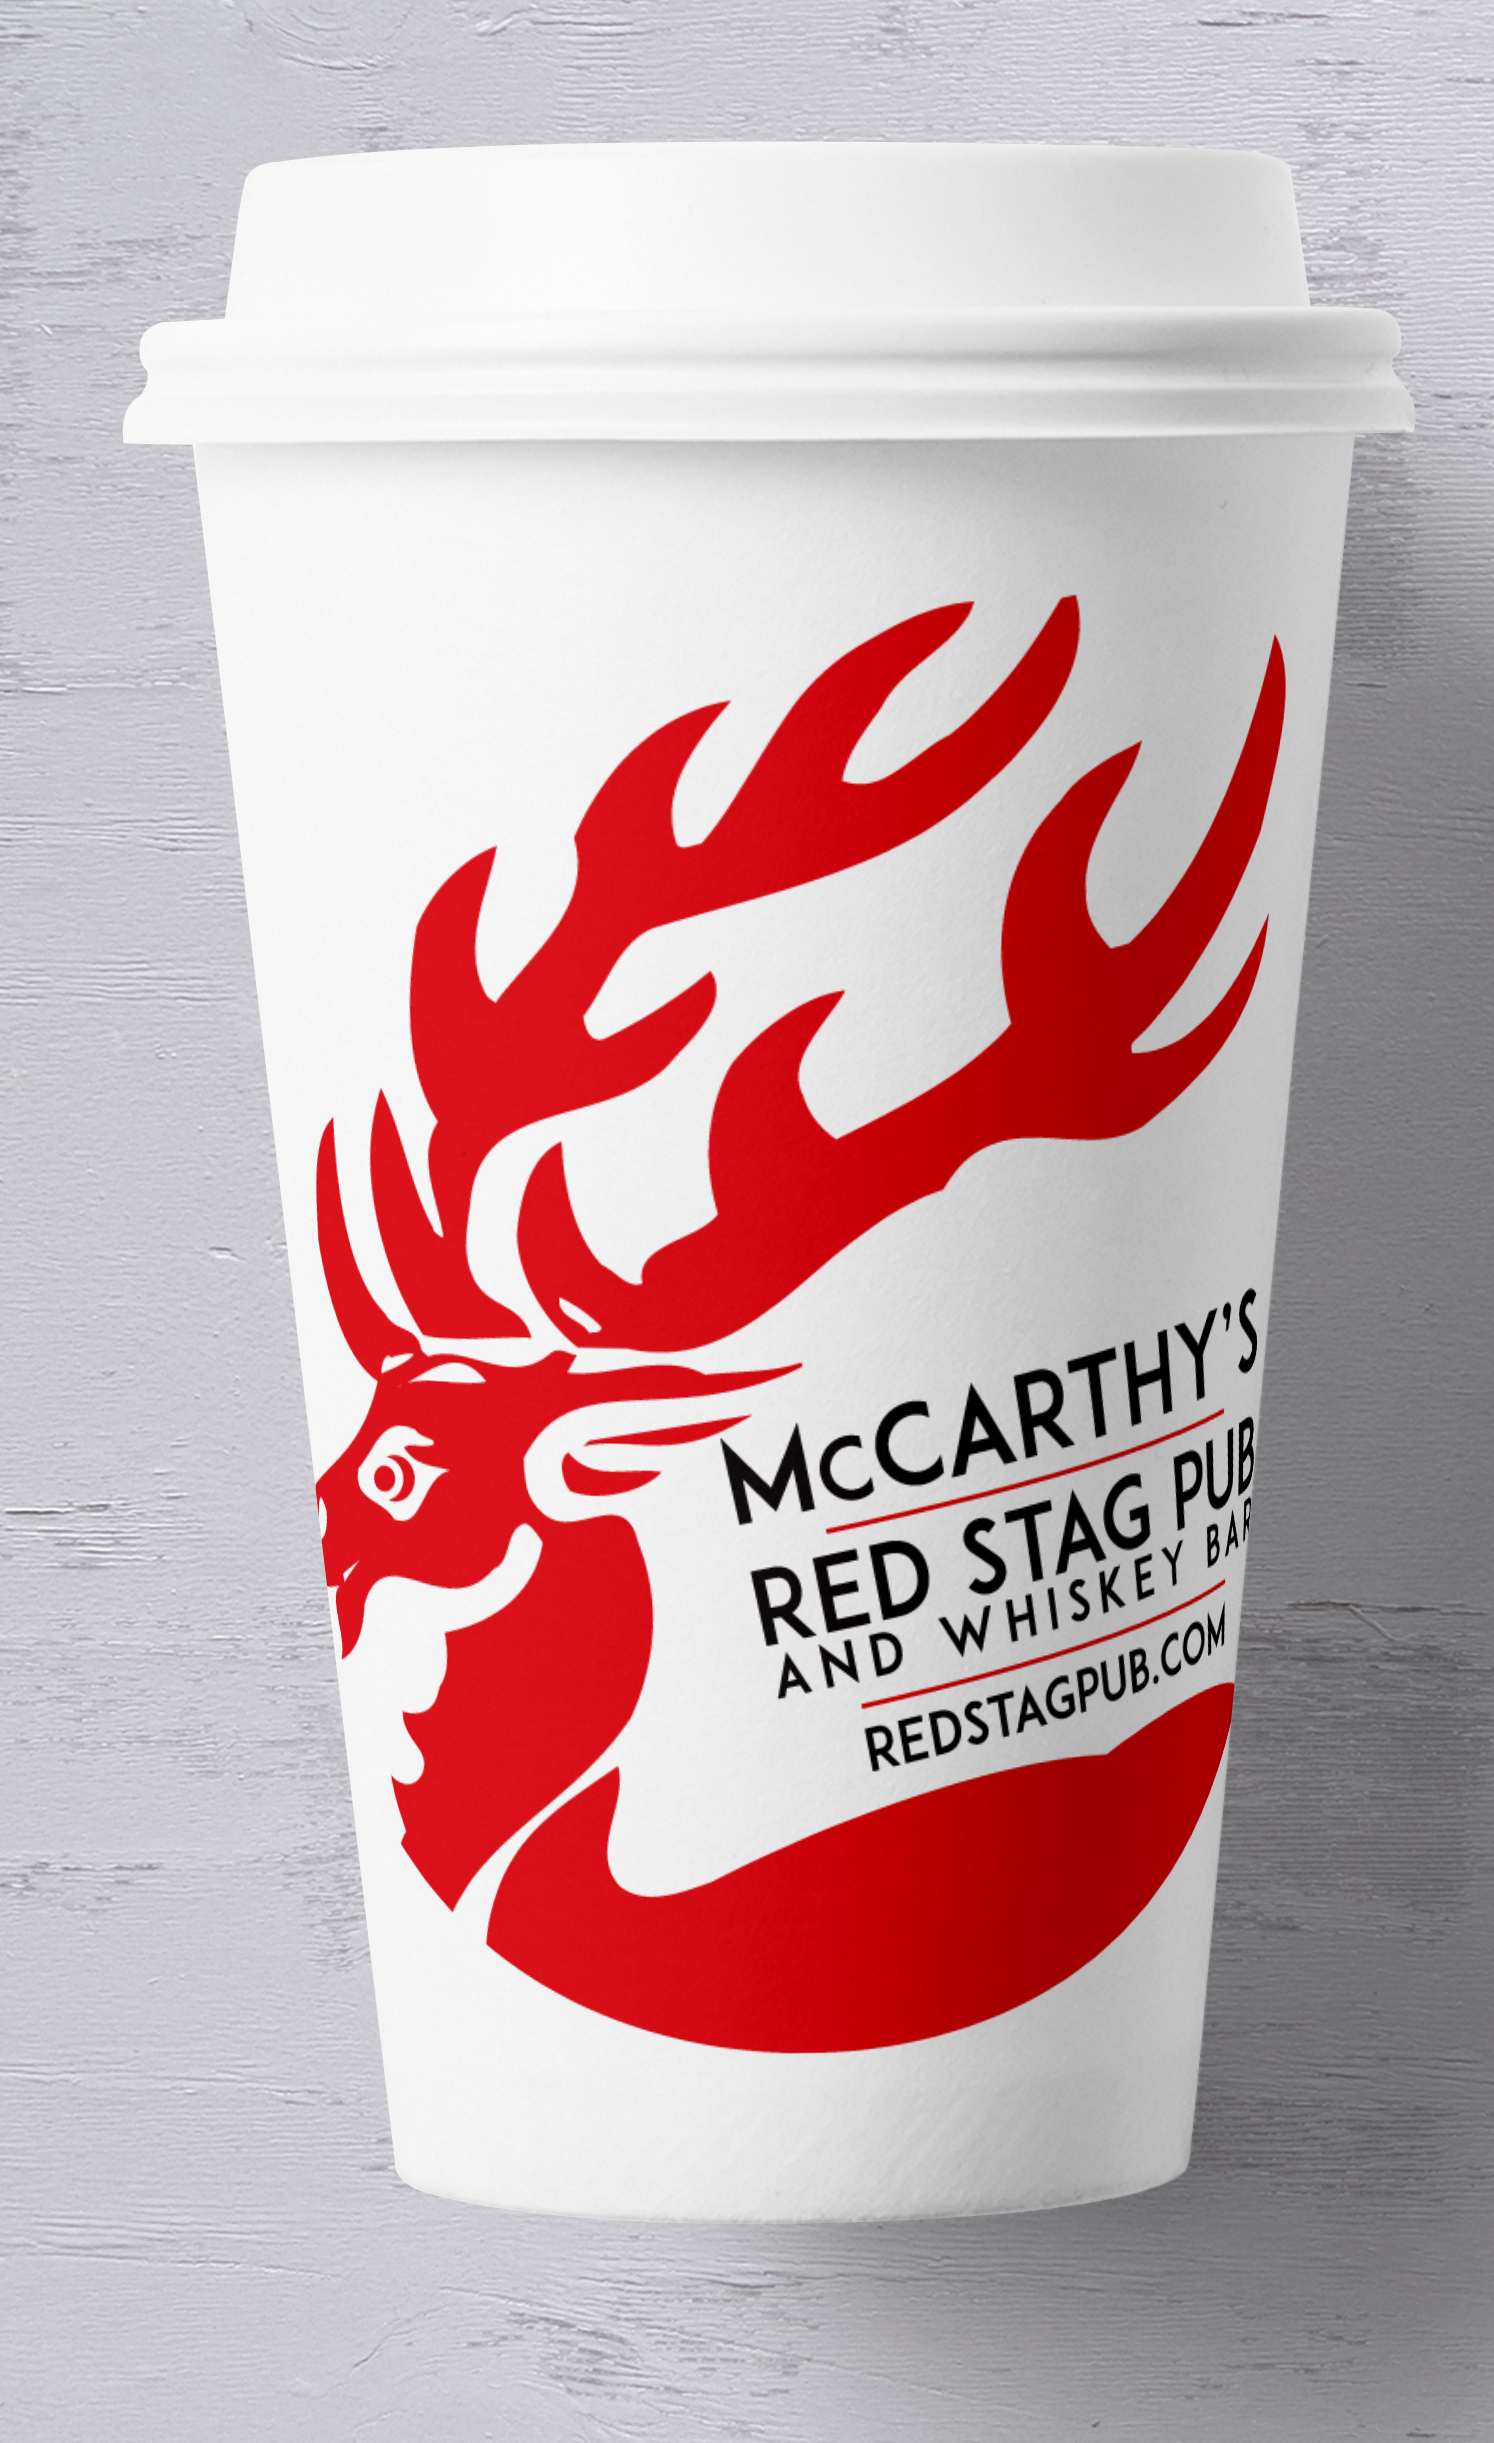 McCARTHY'S CONCEPTUAL TAKE AWAY COFFEE CUP CLIENT: McCARTHY'S RED STAG PUB • BETHLEHEM, PA A wish, that sadly, was discarded due to budget constraints.